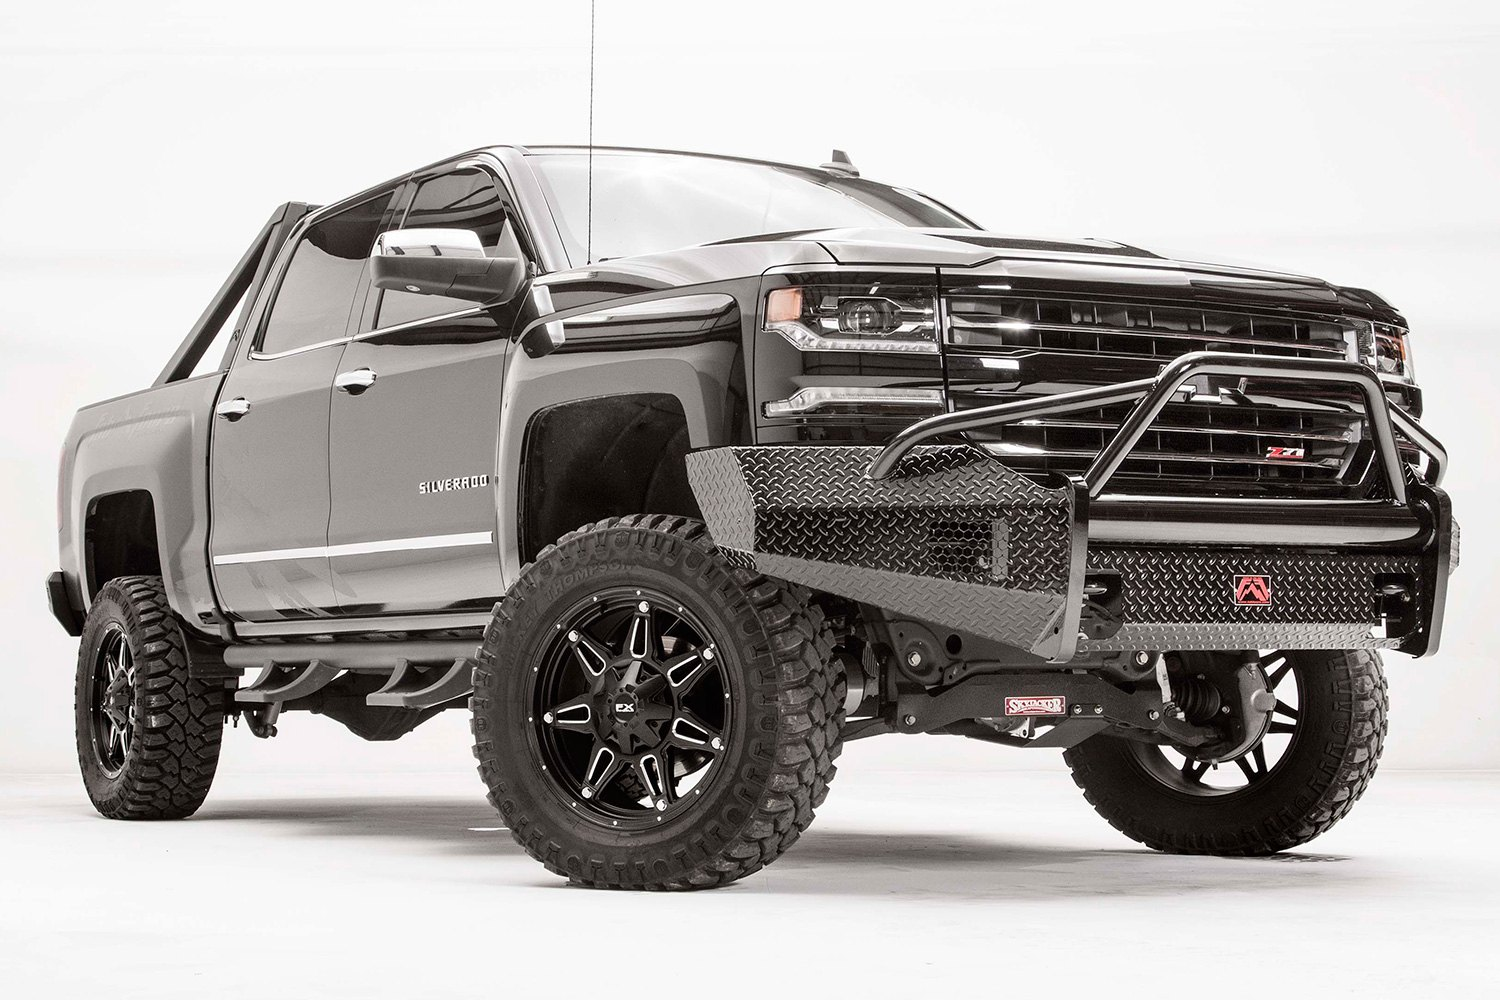 fab fours chevy silverado 2016 black steel full width front winch hd bumper with pre runner guard. Black Bedroom Furniture Sets. Home Design Ideas